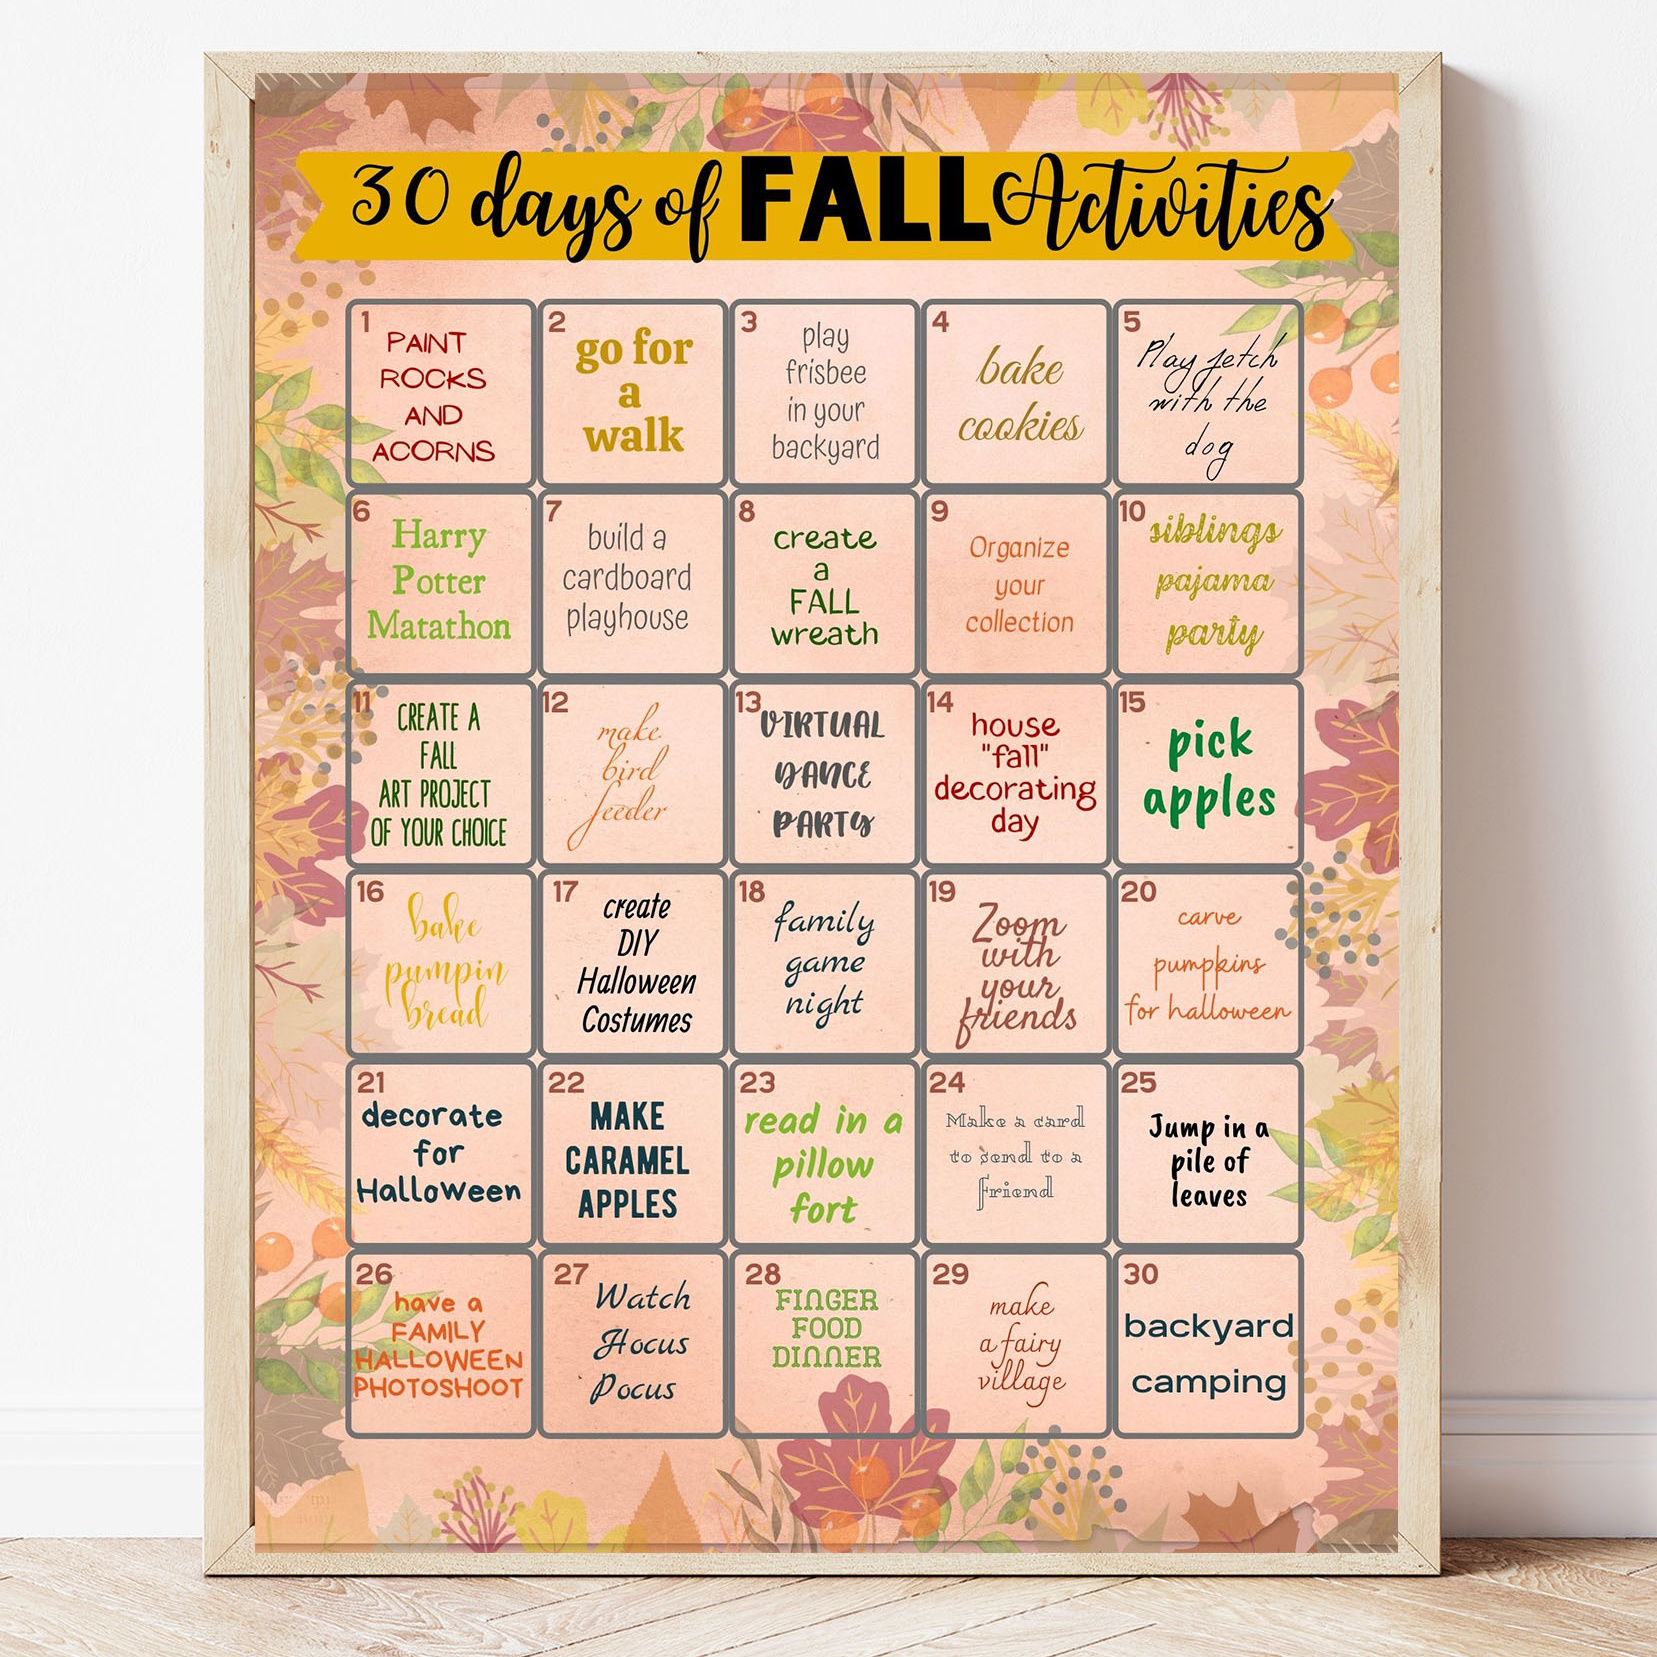 Free Printable 30 Days of Fall Activities